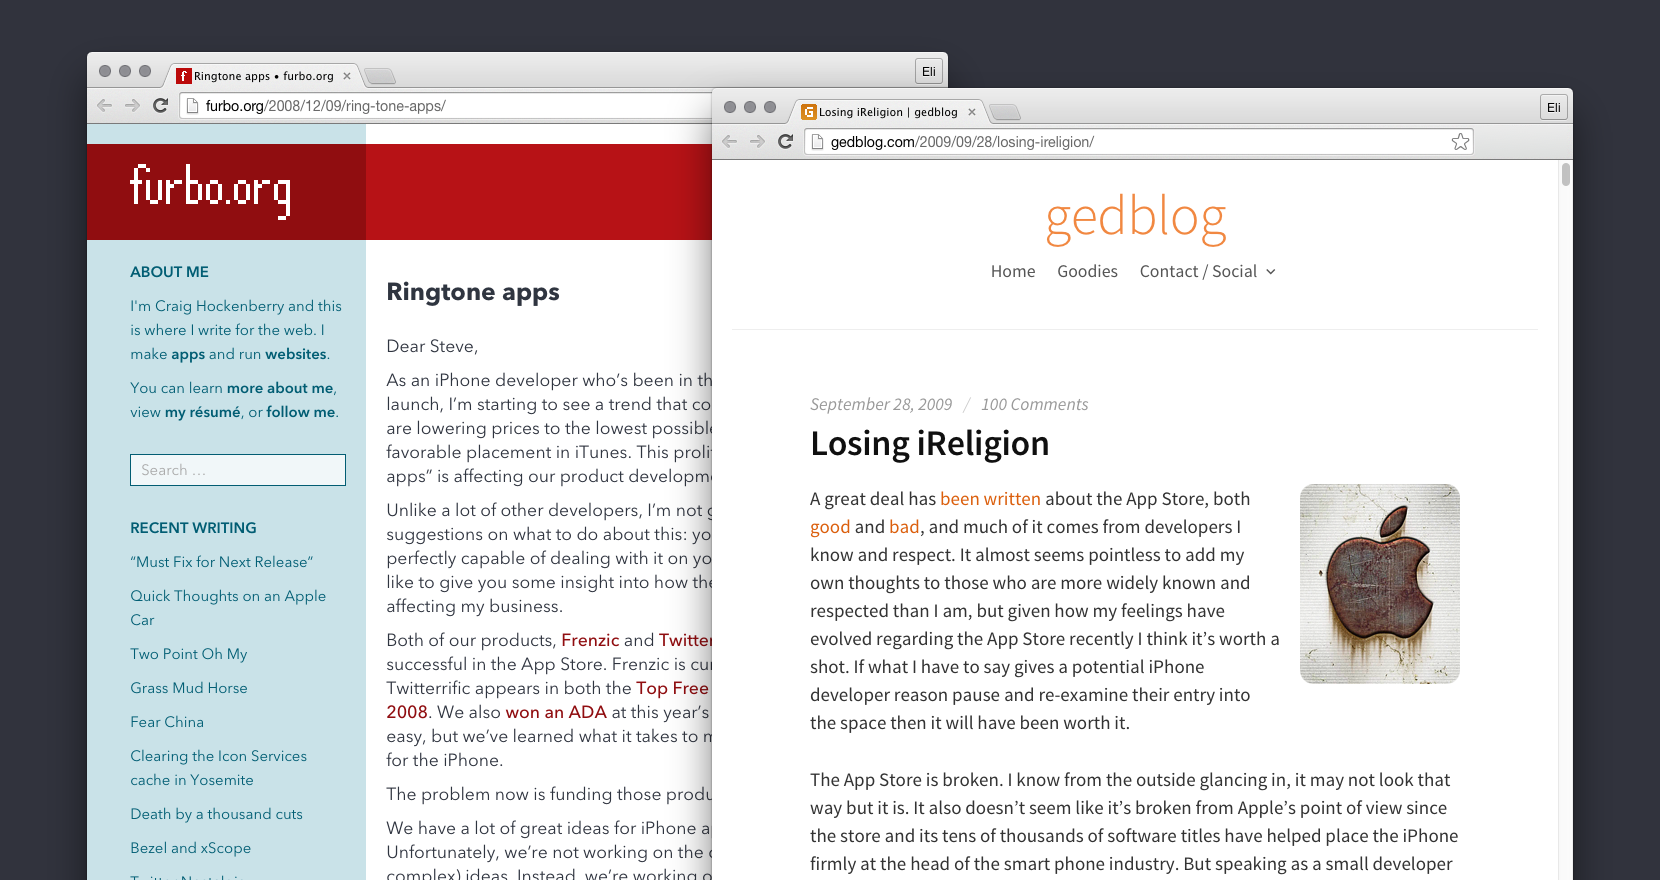 Ged Maheux and Craig Hockenberry's early blog posts about App Store incentives.